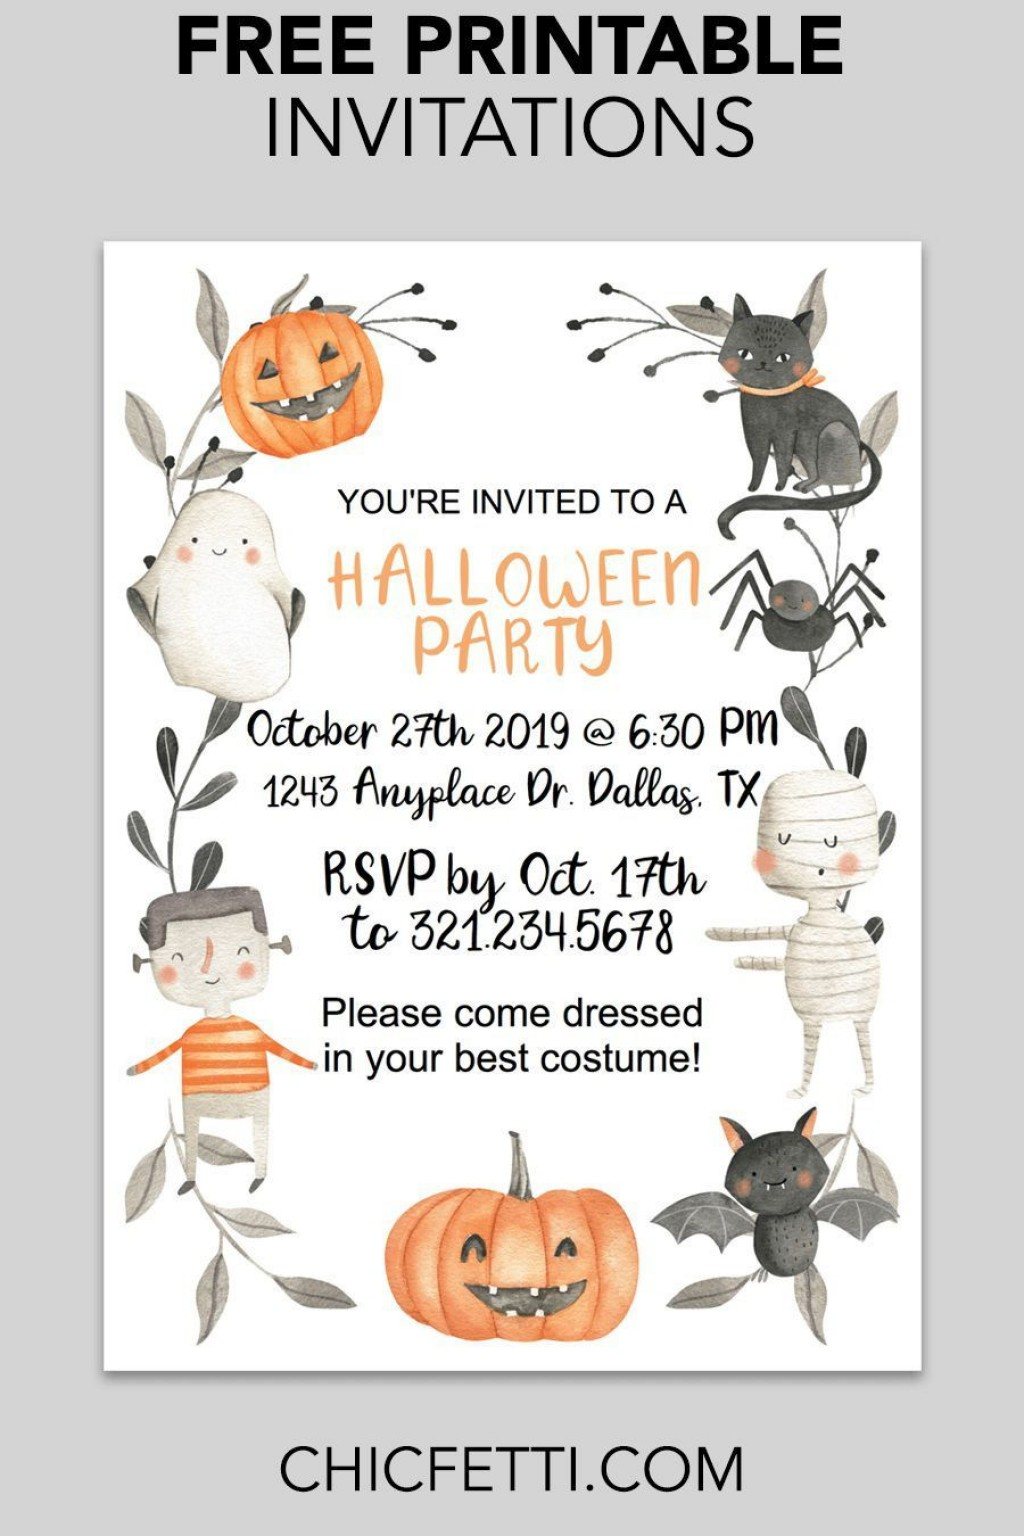 002 Awesome Halloween Party Invite Template High Definition  Spooky Invitation Free Printable Birthday DownloadLarge